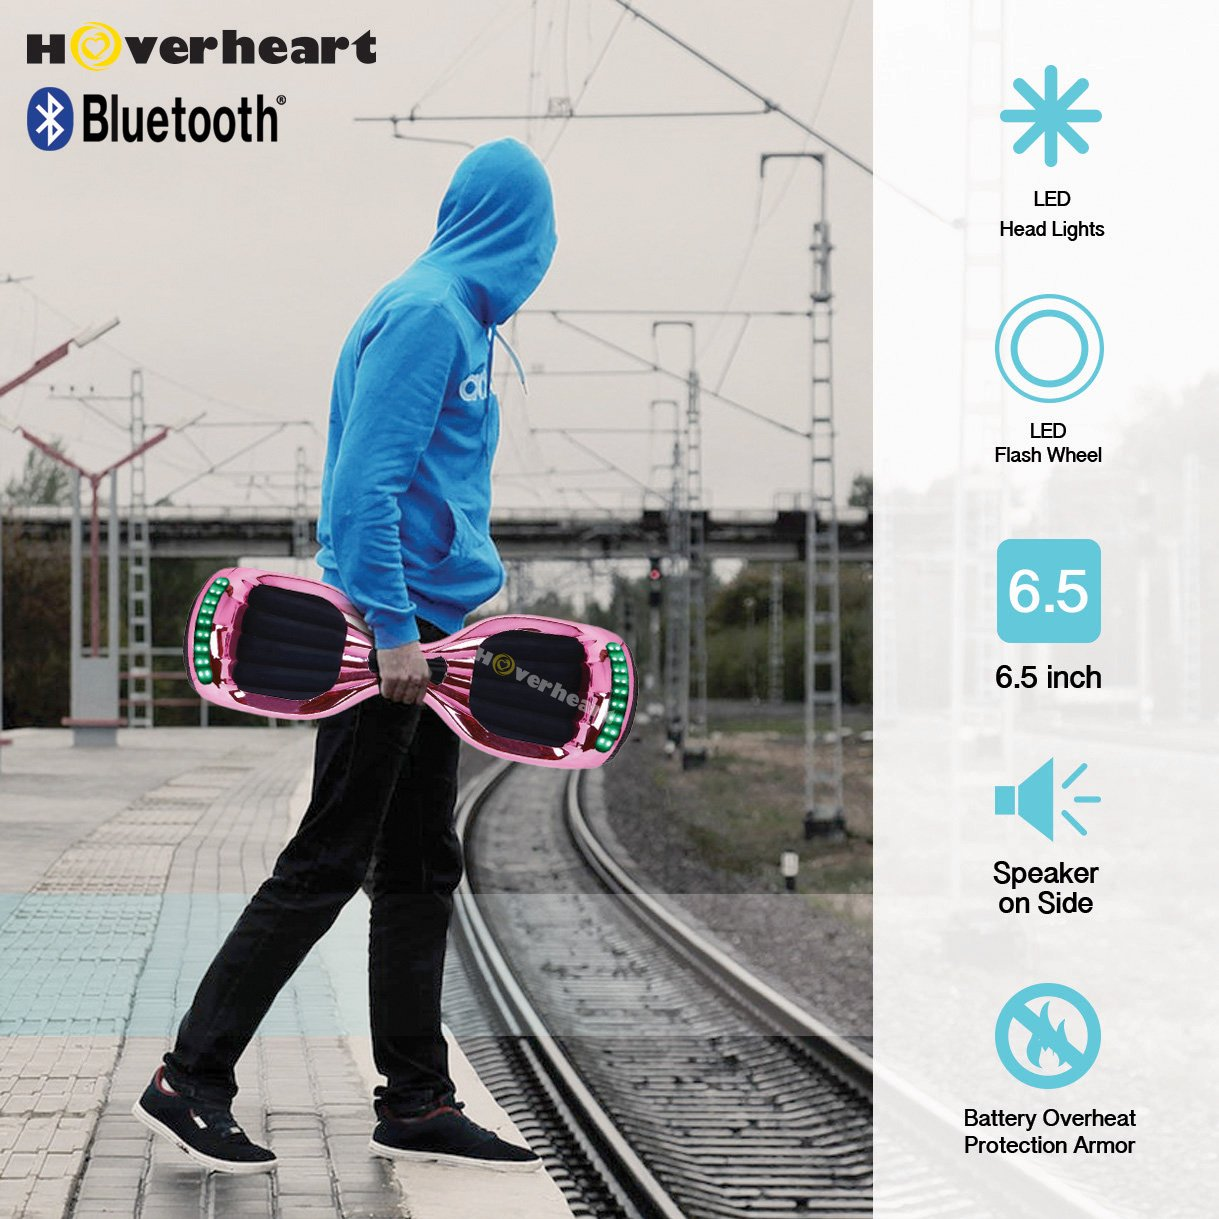 Hoverboard UL 2272 Certified Flash Wheel 6.5'' Bluetooth Speaker with LED Light Self Balancing Wheel Electric Scooter (Chrome Pink) by Hoverheart (Image #7)